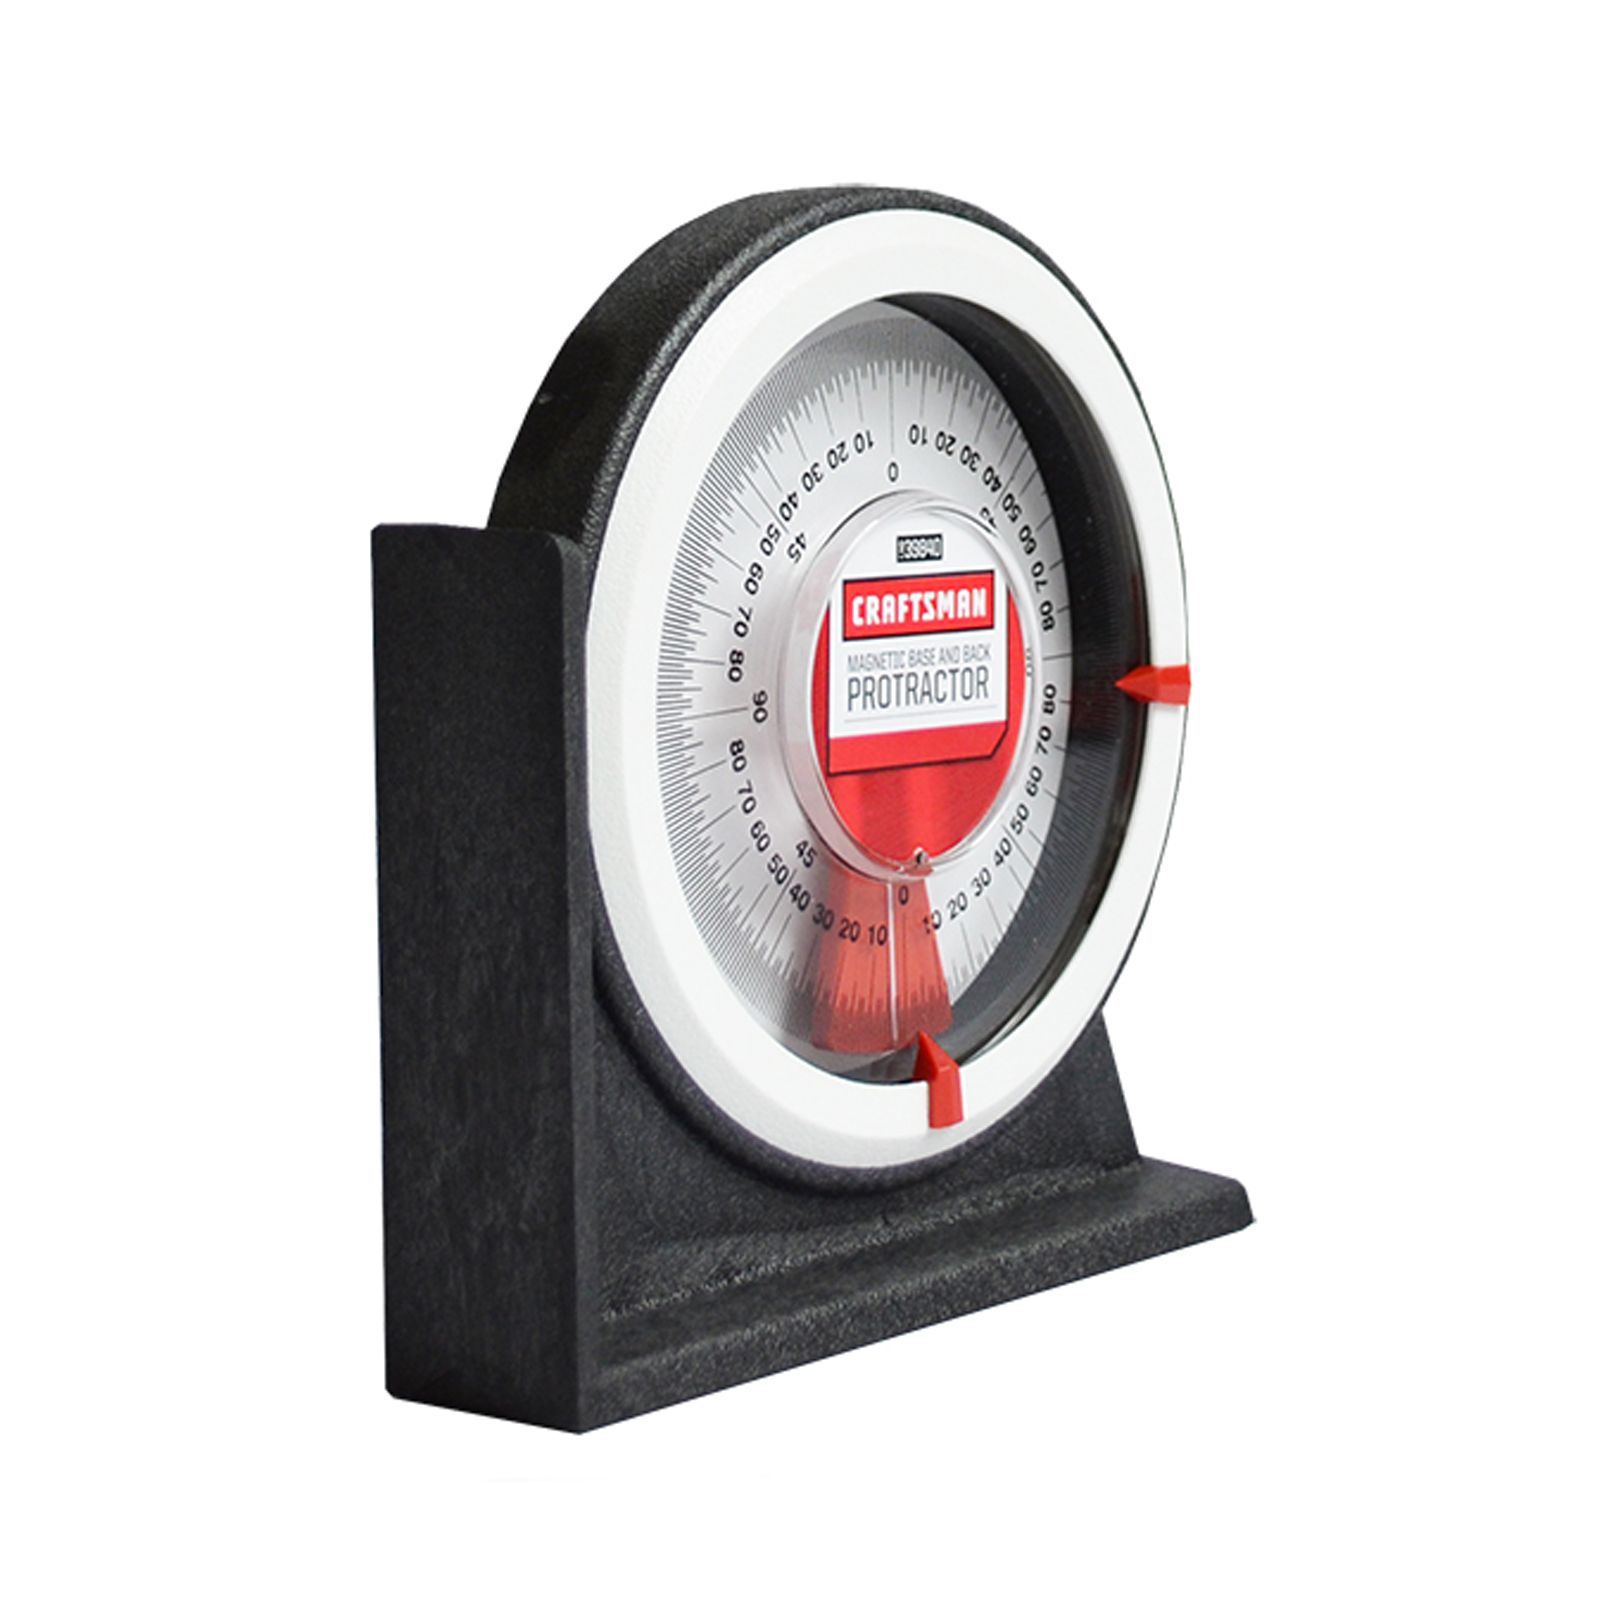 Craftsman Magnetic Universal Protractor